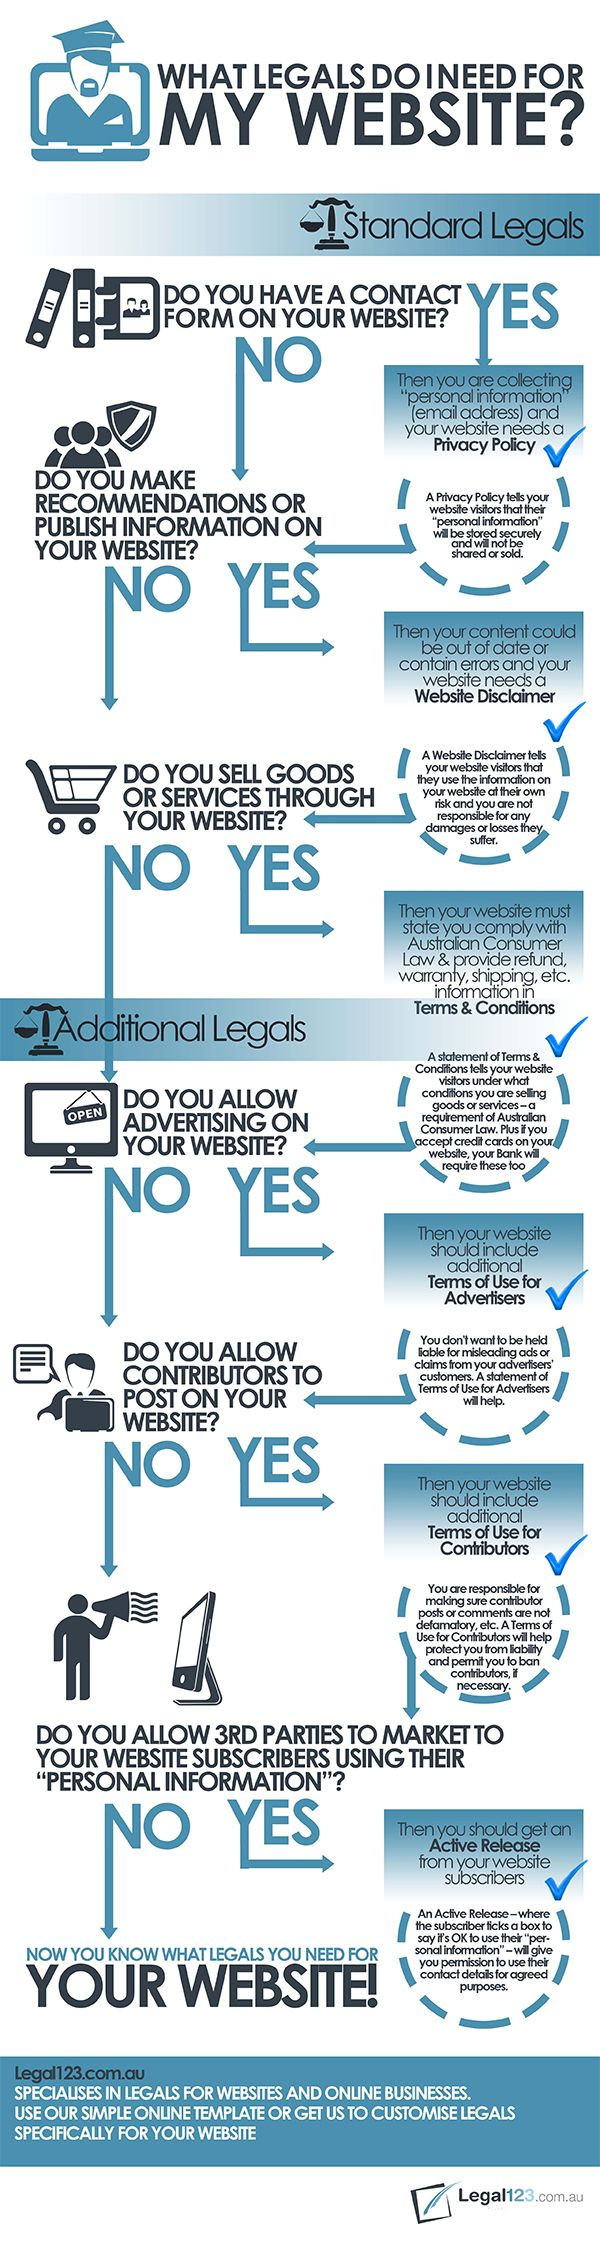 Own a Website Here Are Some Legal Documents You Might Need